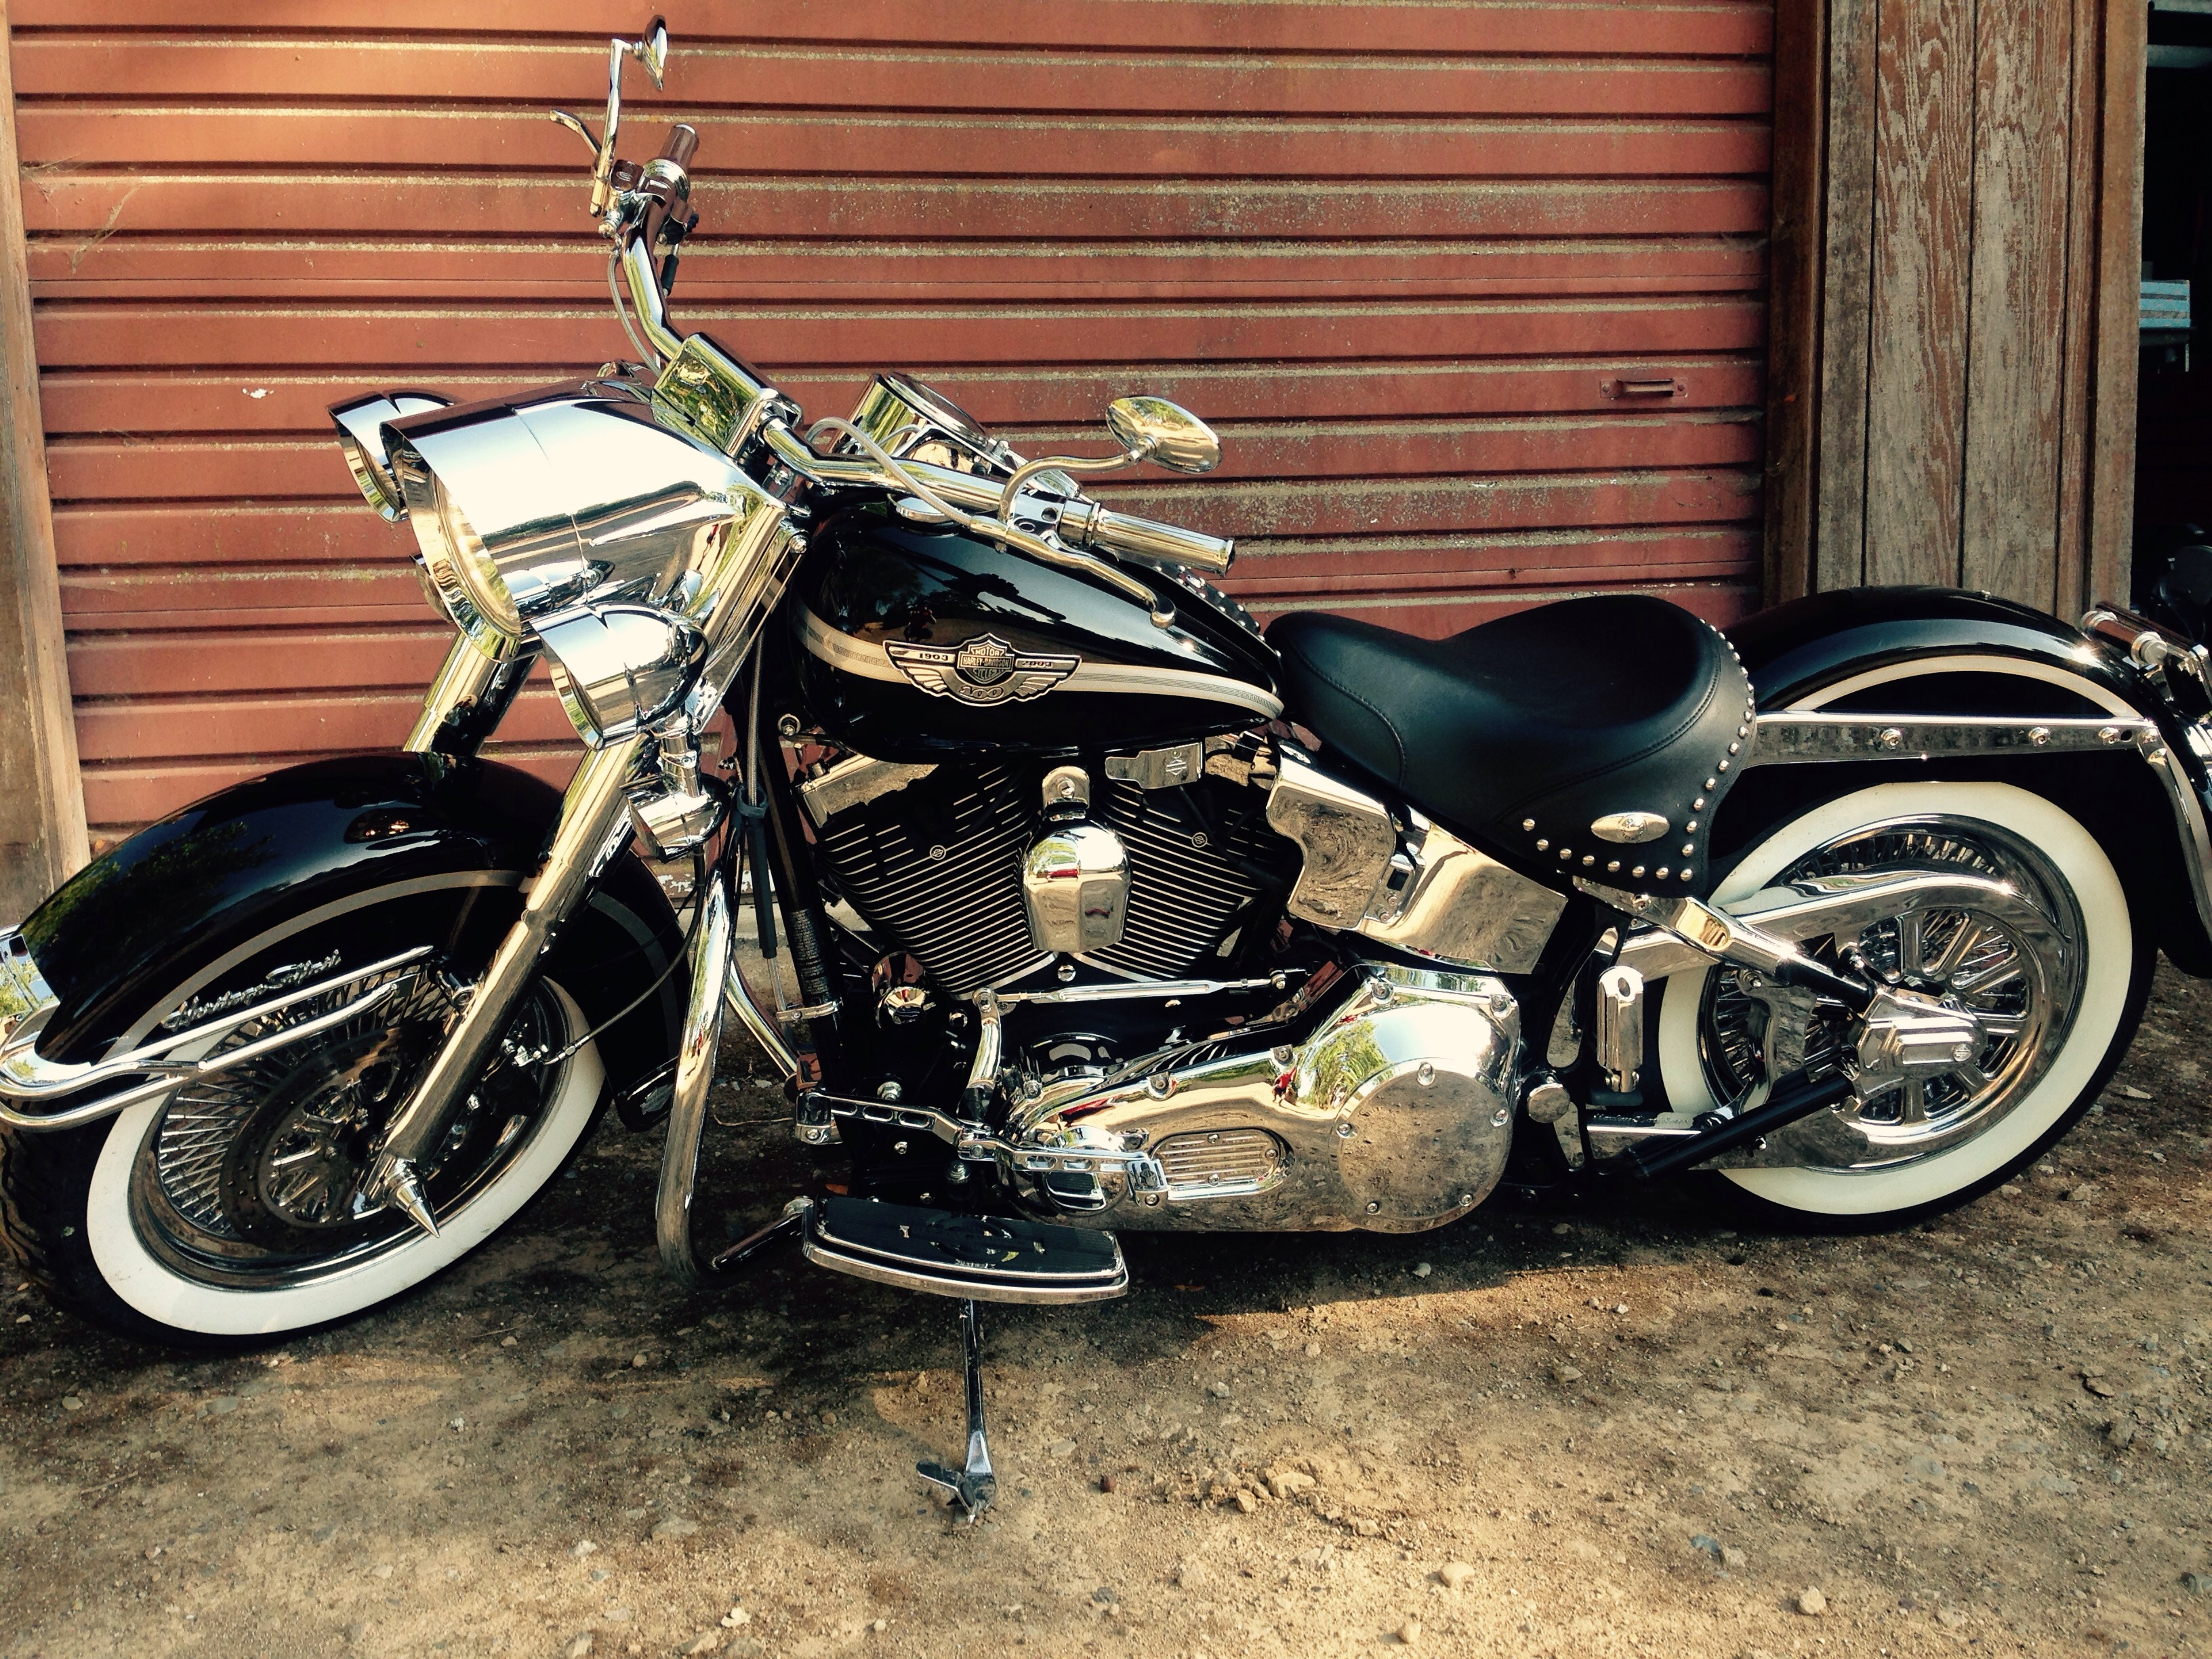 2001 Harley-Davidson Heritage Softail Classic Injection #6